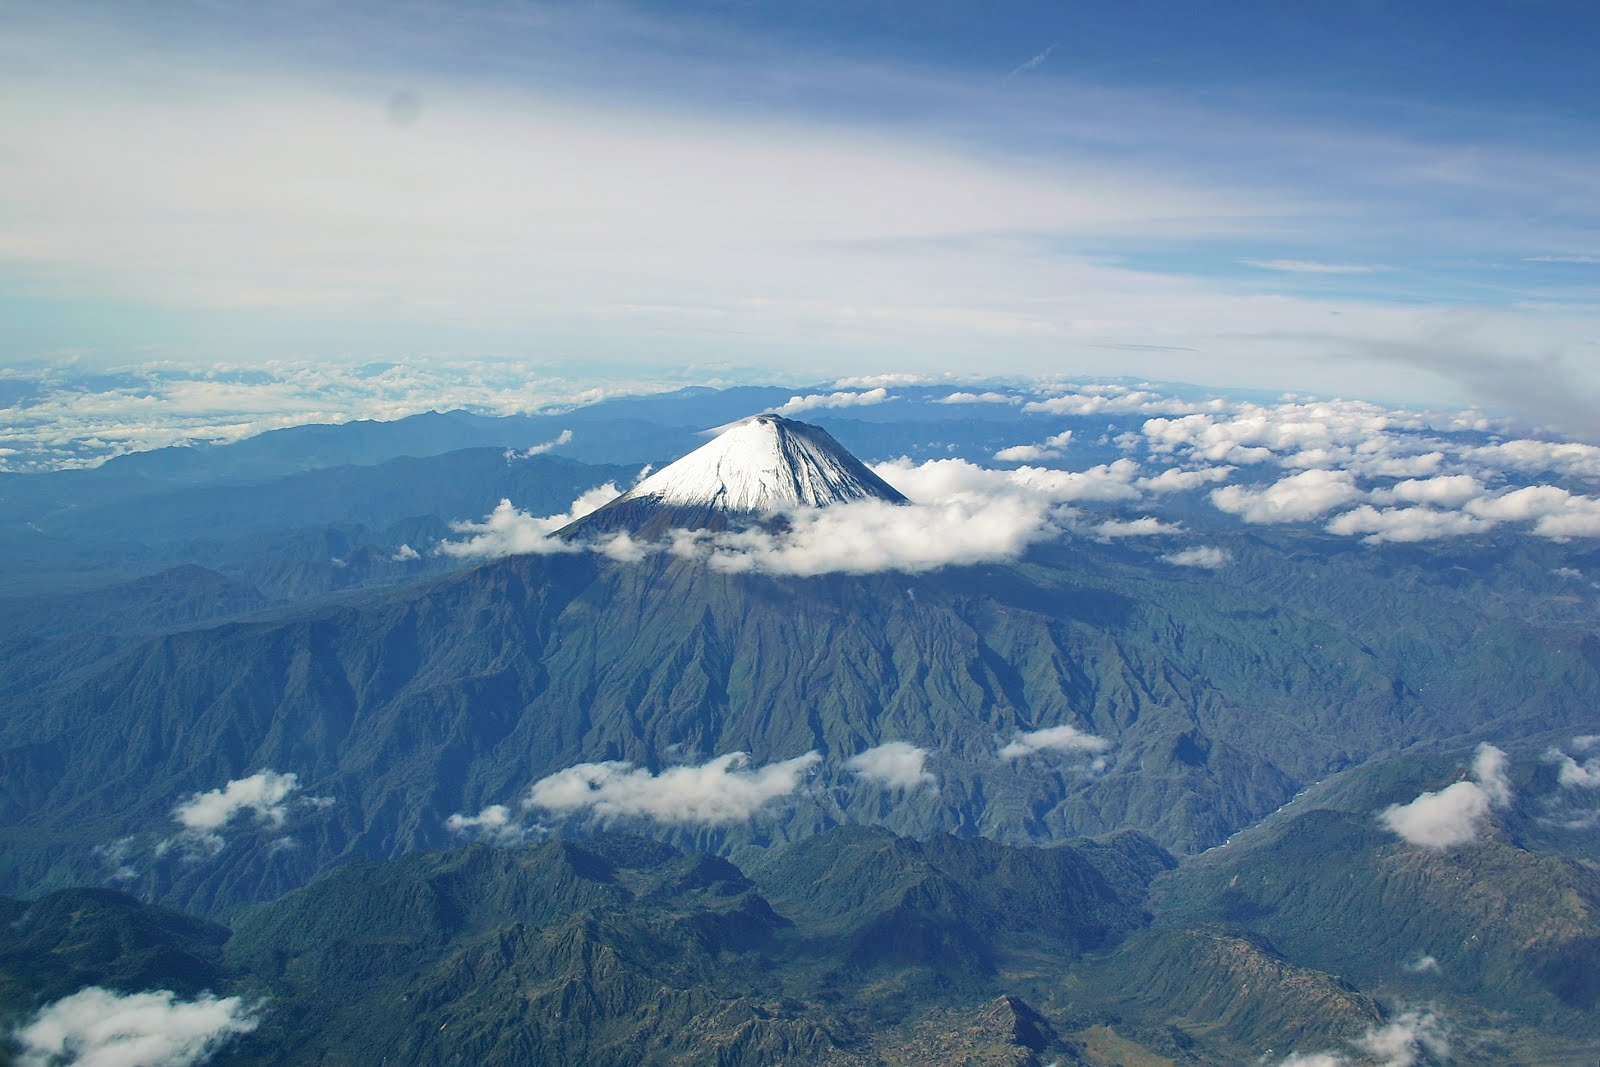 Yet another Ecuador volcano...Sangay showing an increase in activity along with Tungurahua and....